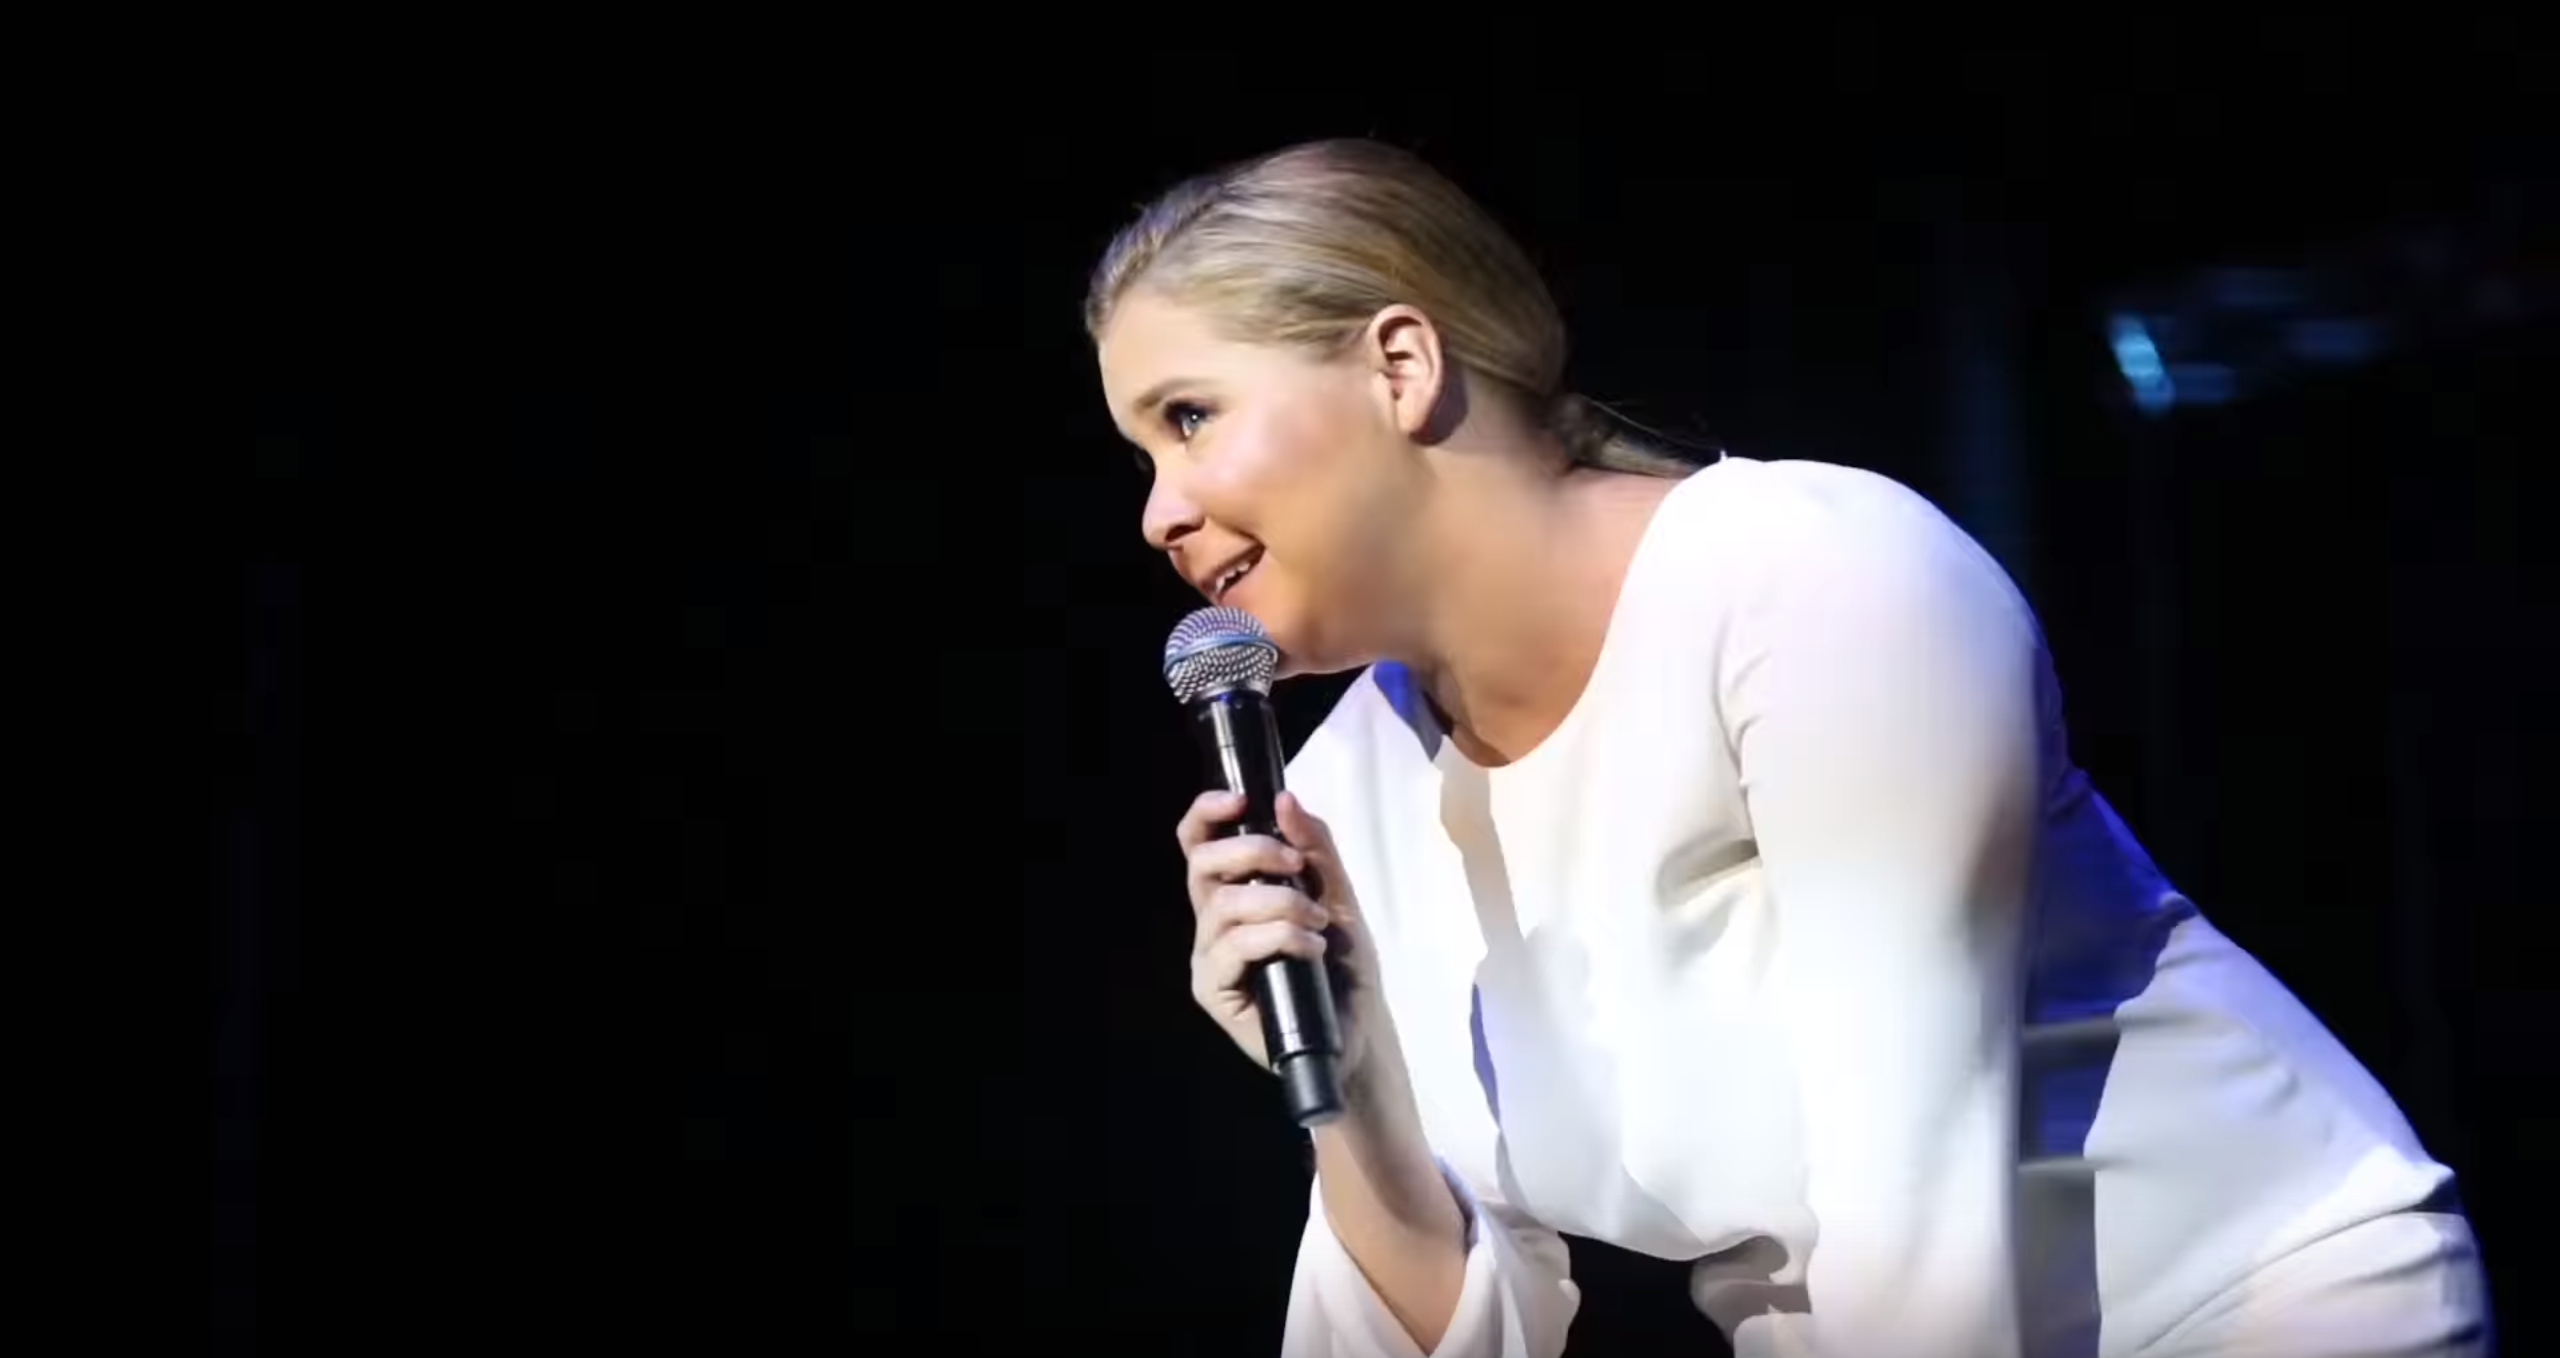 Amy Schumer Tit Pics amy schumer is our hero: watch her kick out sexist heckler